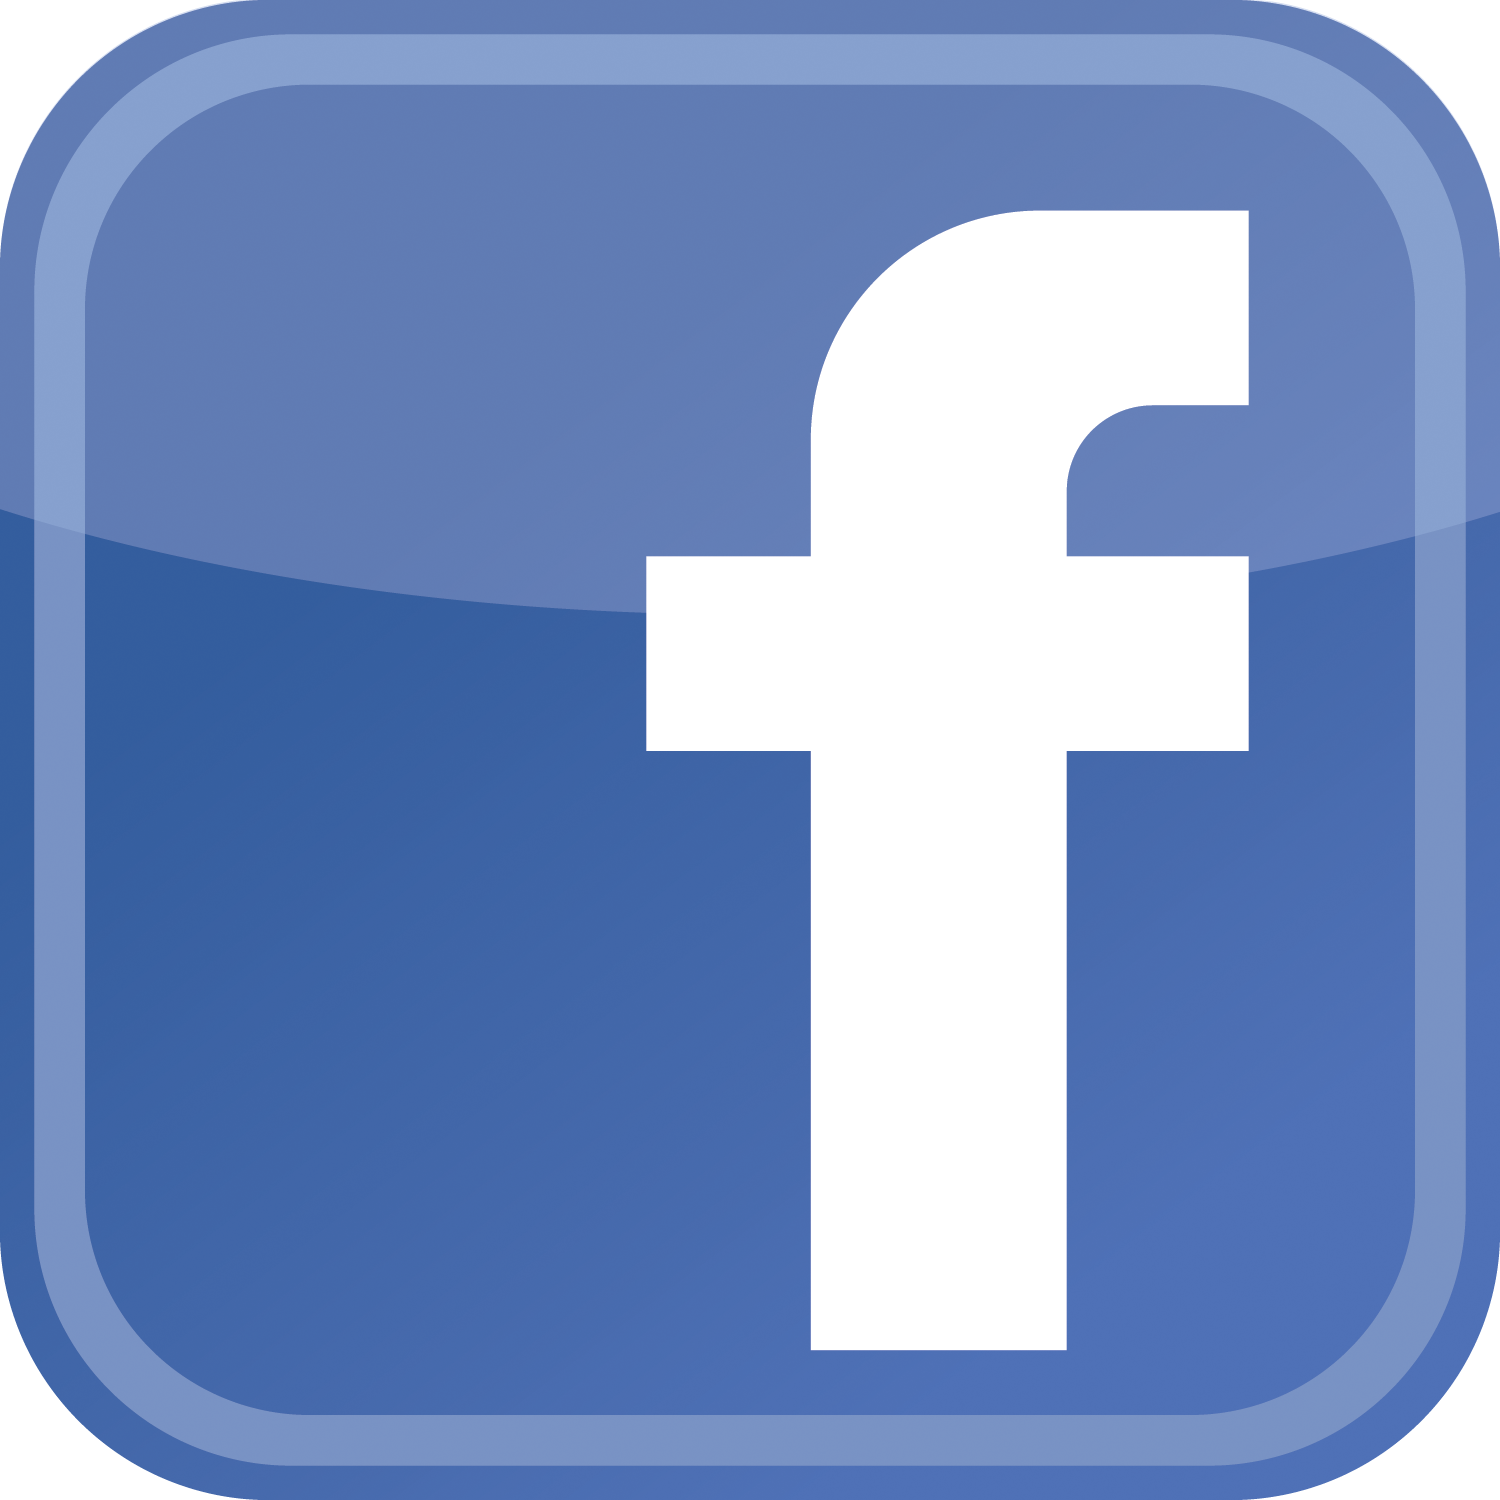 transparent facebook logo icon